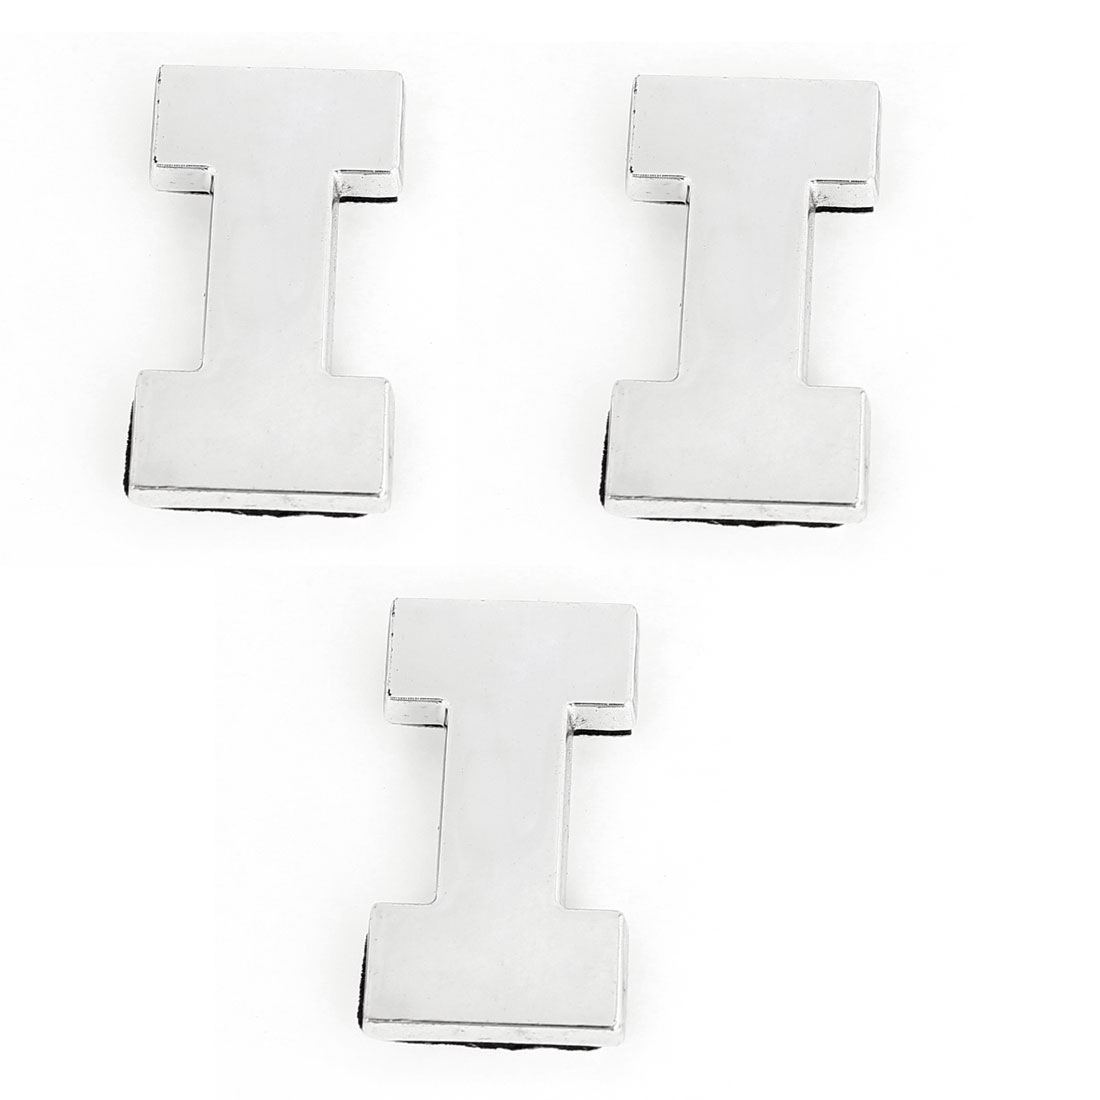 Auto Car Silver Tone Plastic Letter I Design Emblem Badge Sticker Decor 3pcs